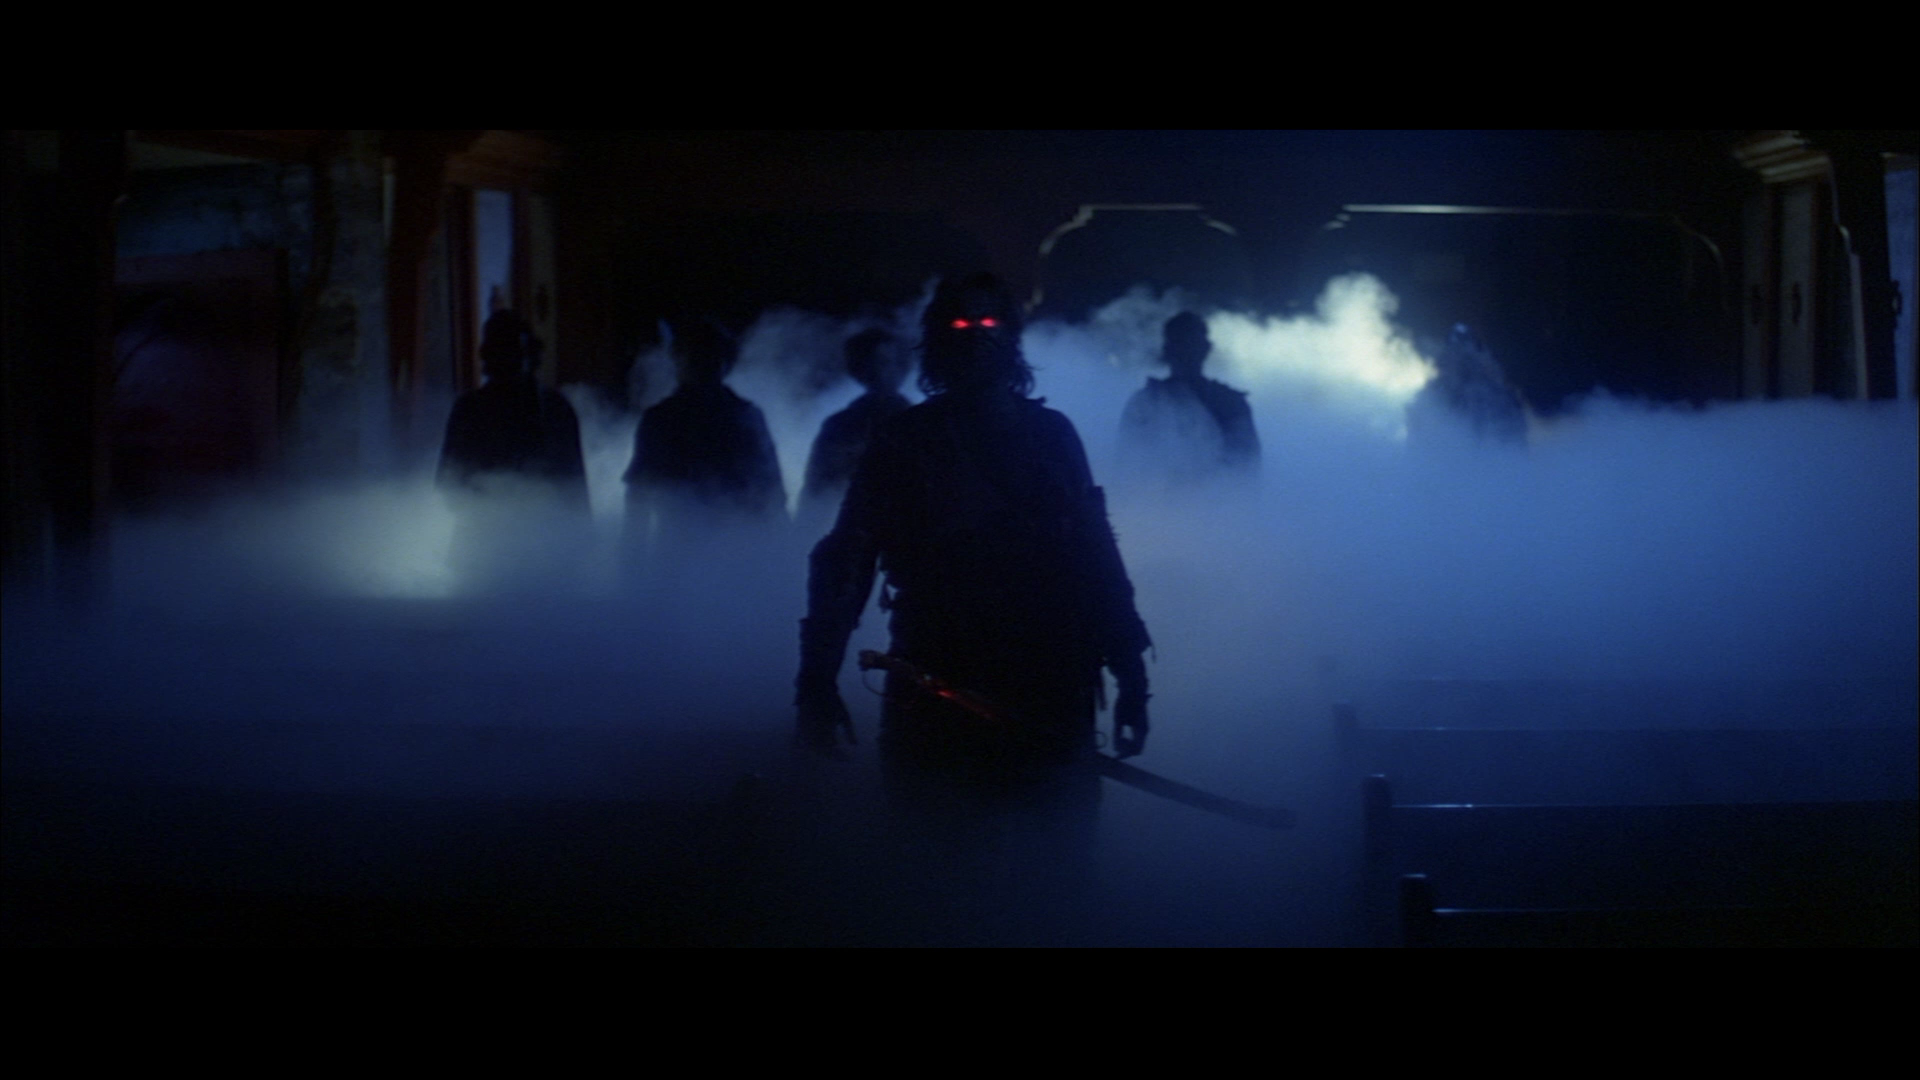 4. The Fog - John Carpenter